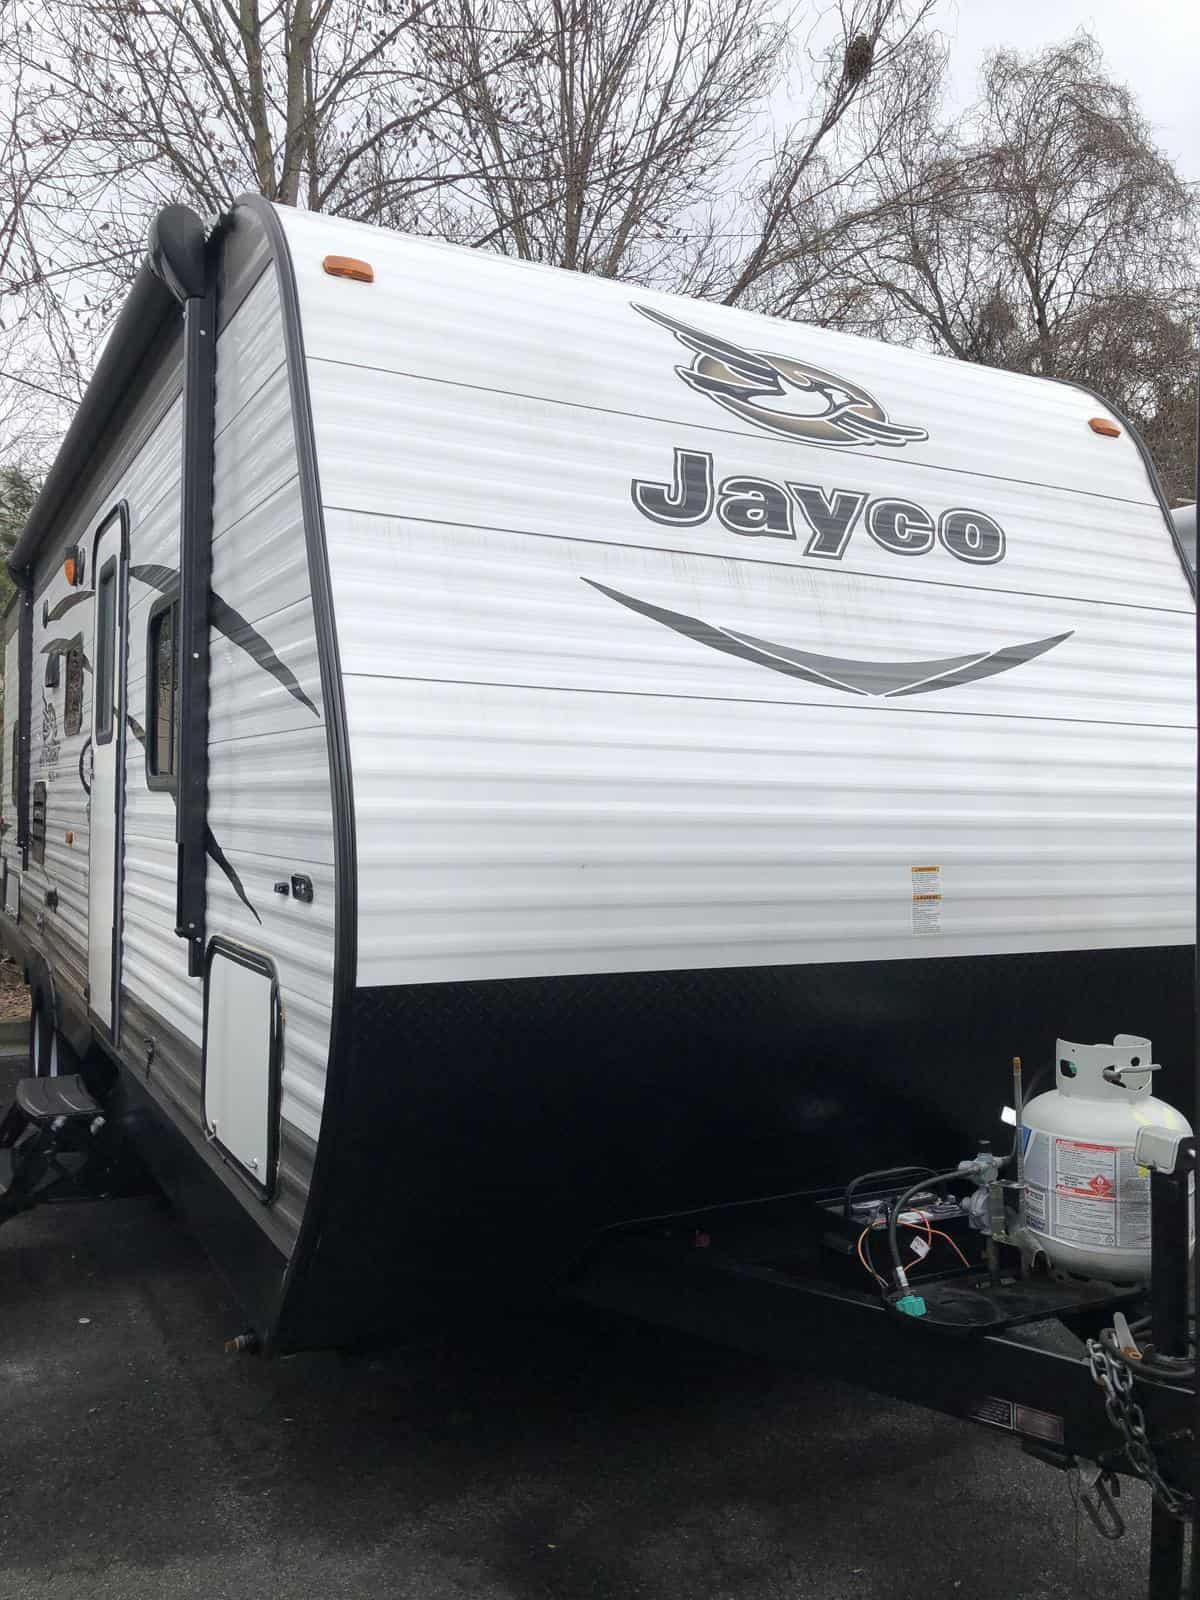 USED 2016 Jayco Jayco 267BHSW - Three Way Campers